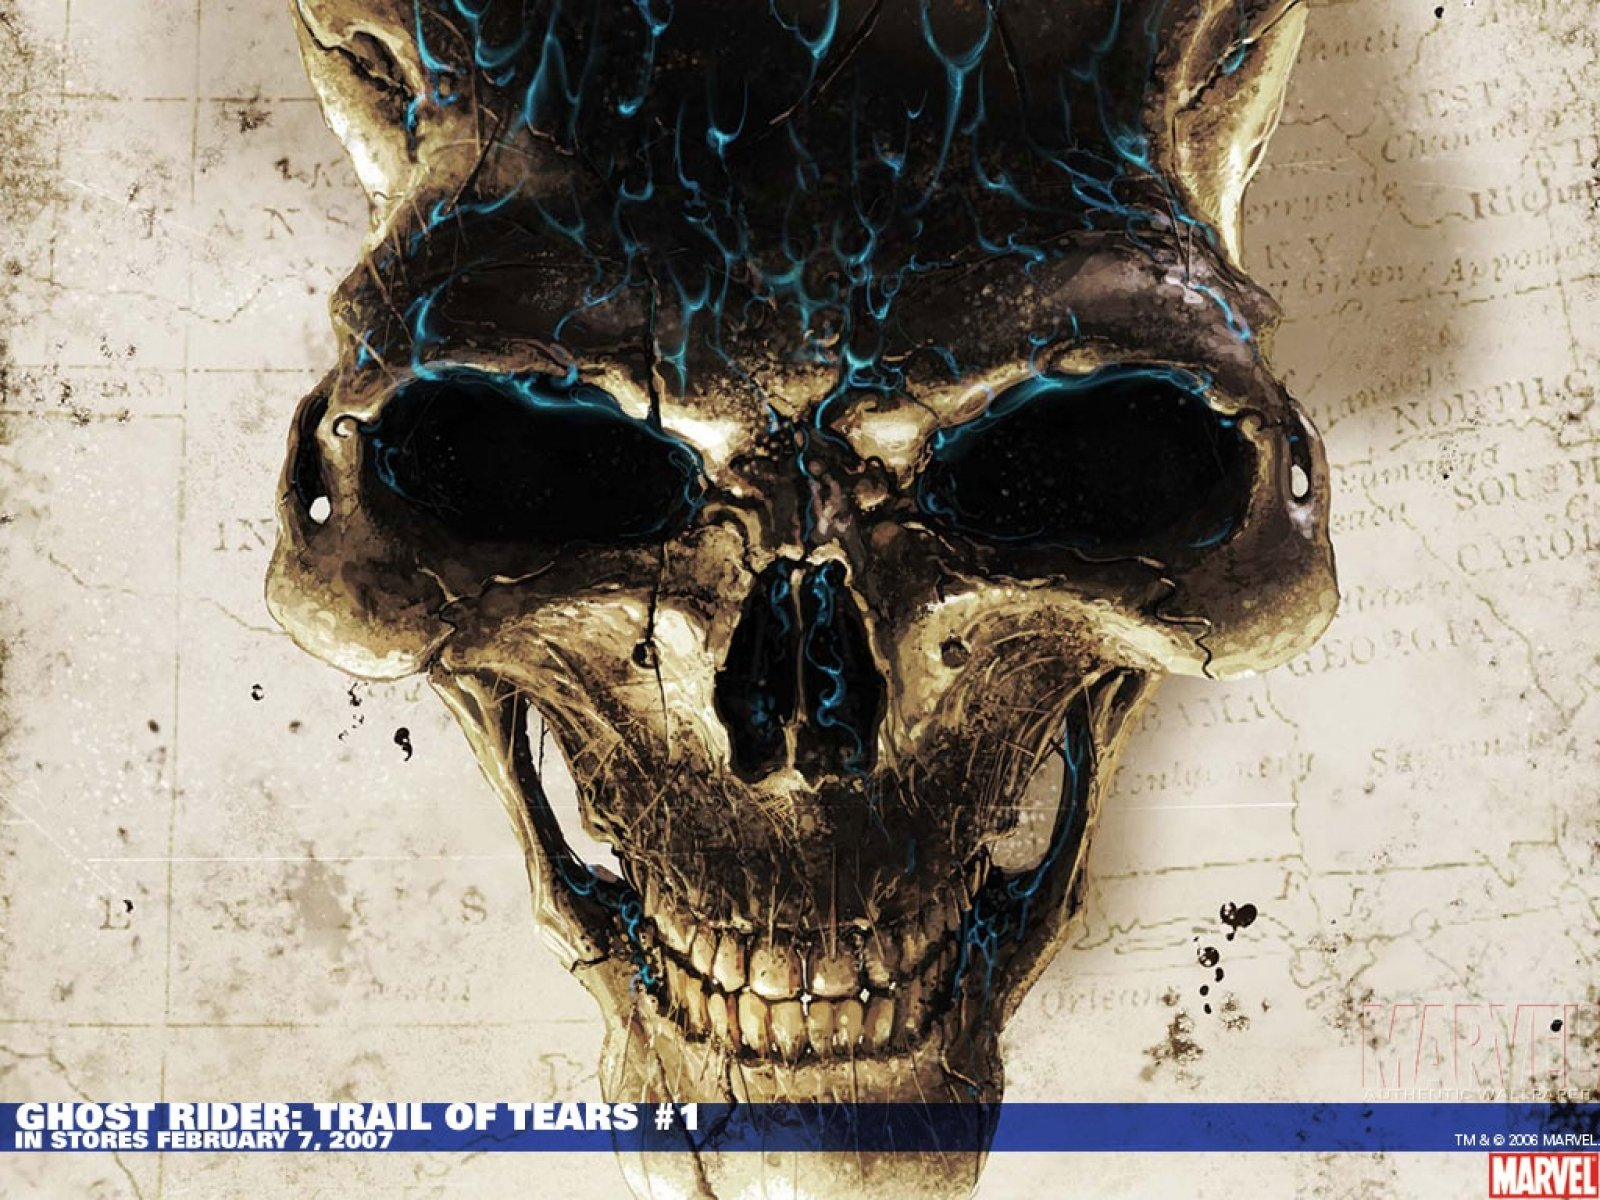 Wallpaper Hd Ghost Rider Ghost Rider Wallpaper And Background Image 1600x1200